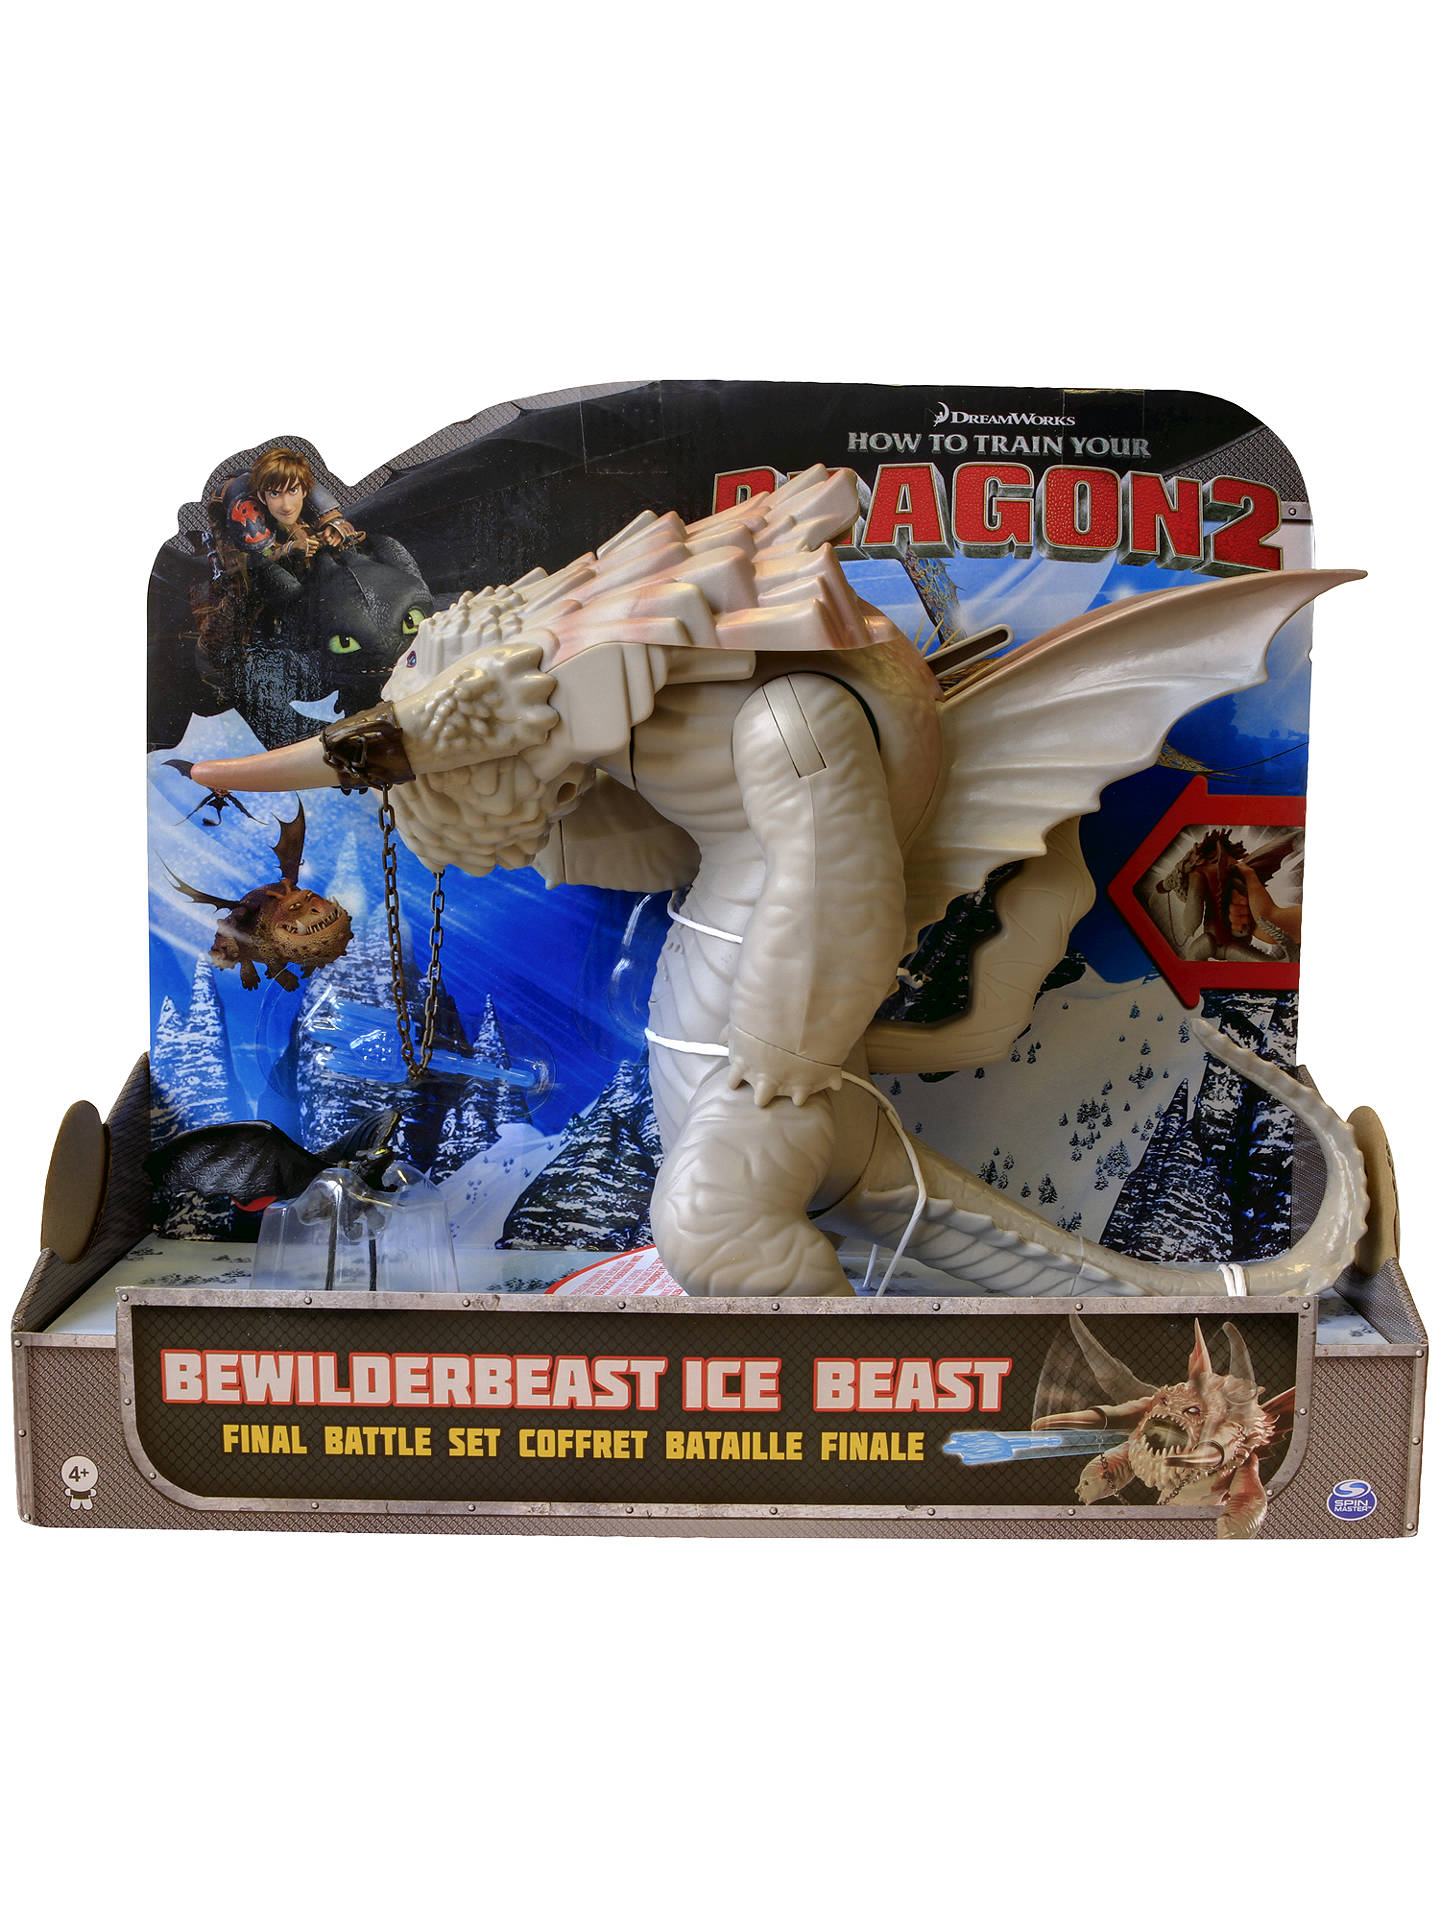 How To Train Your Dragon 2 Bewilderbeast Ice Beast Final Battle Set At John Lewis Partners